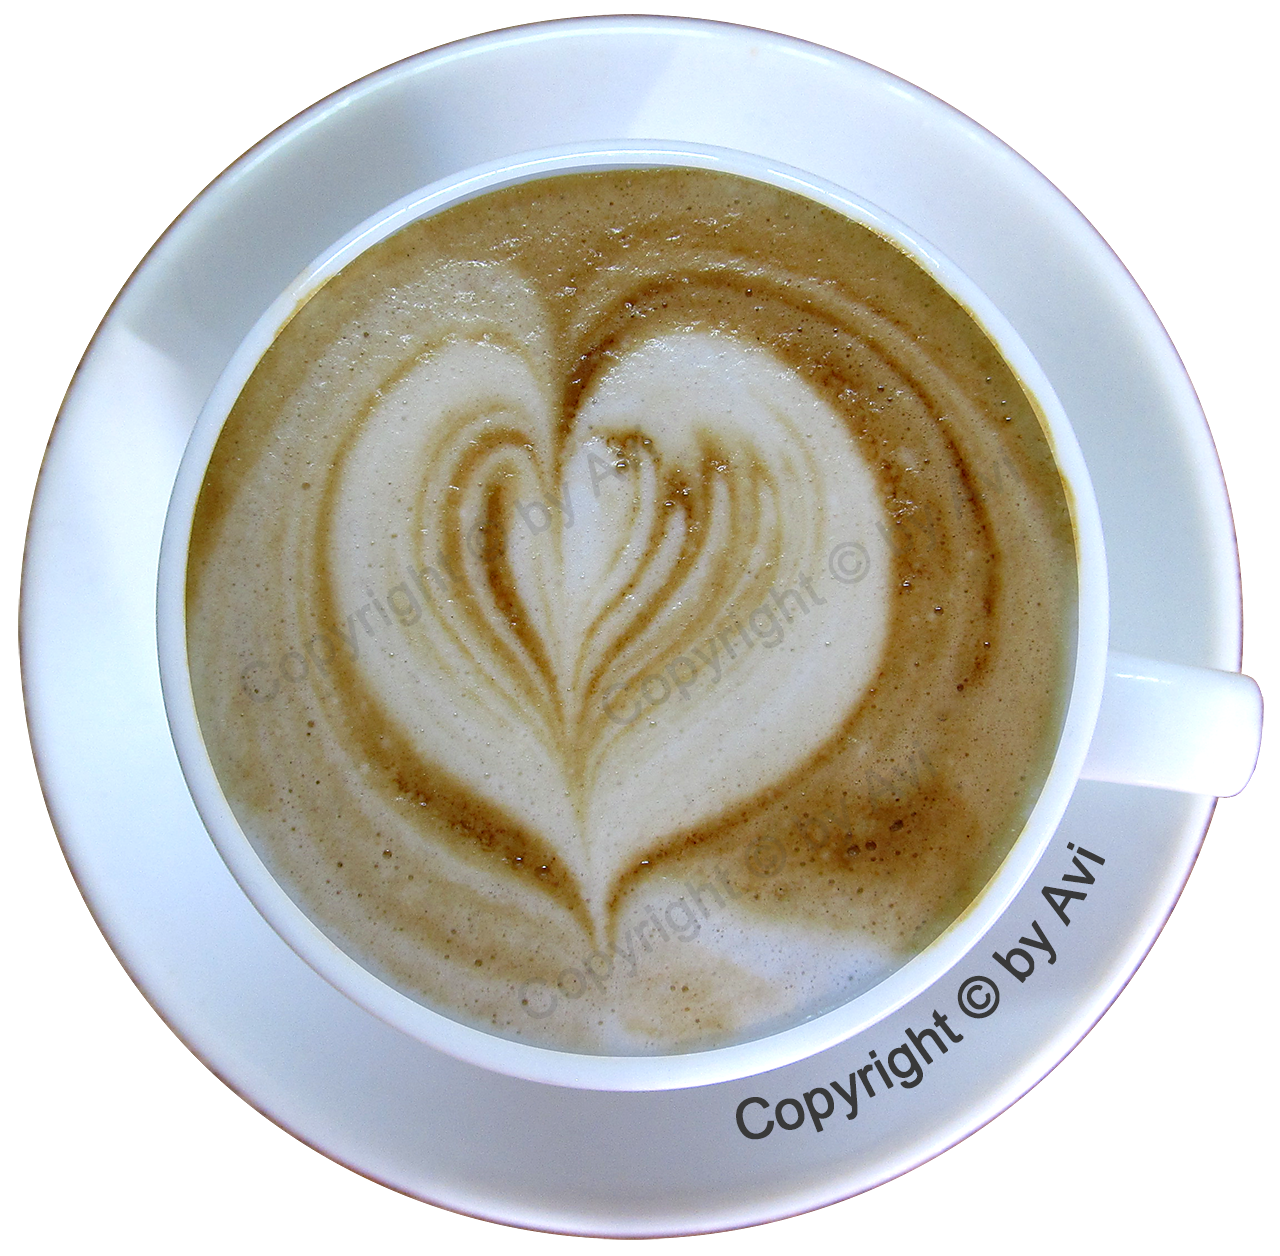 Cappuccino cup by Avi